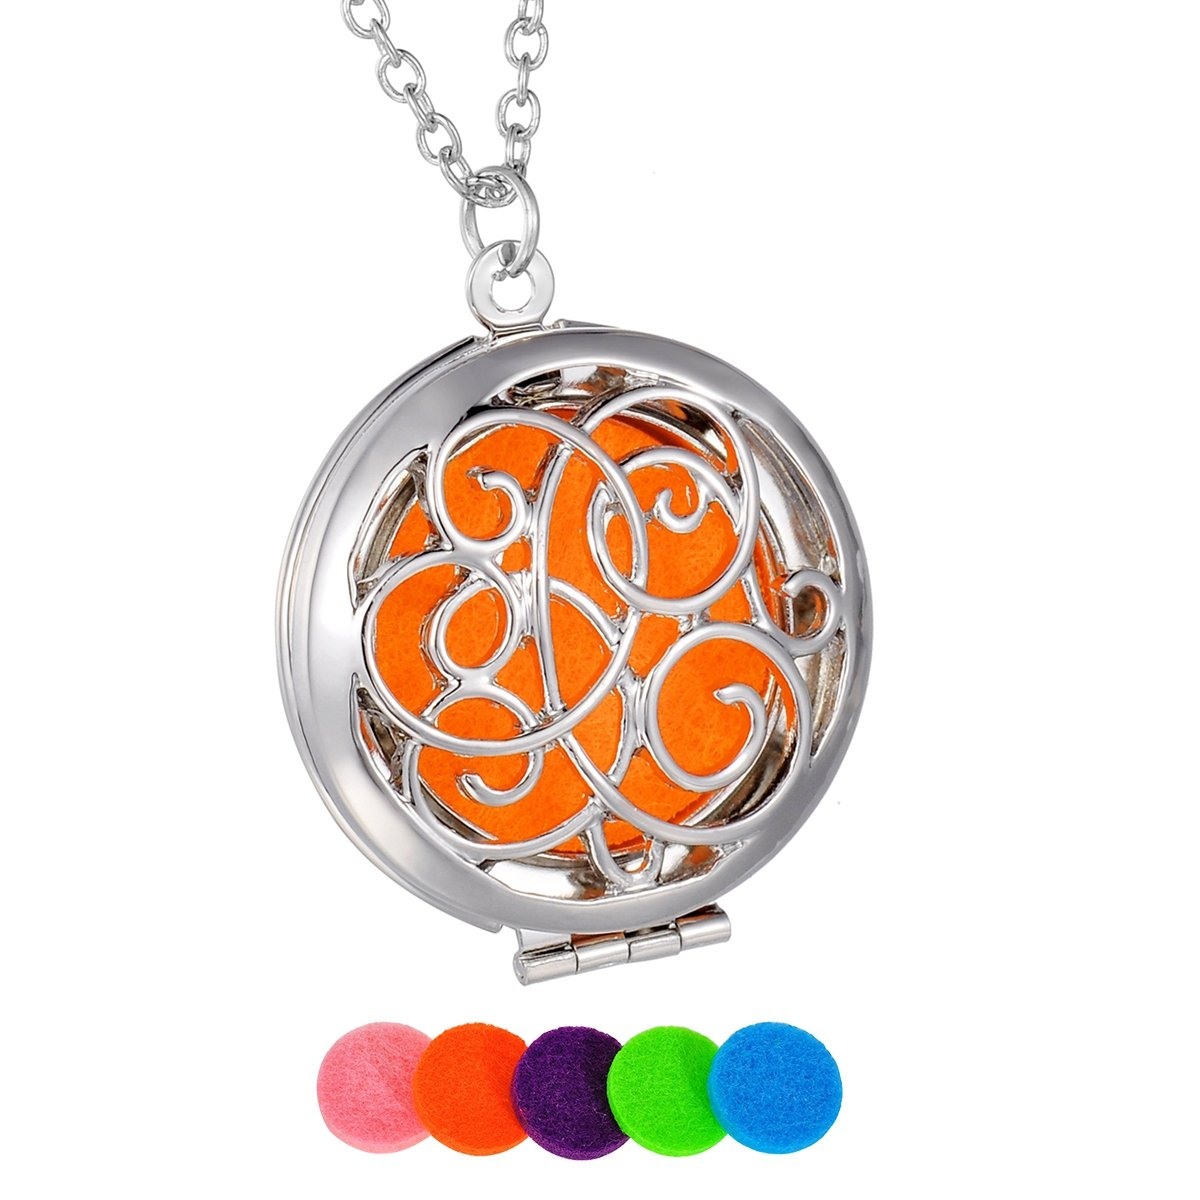 HooAMI Vine Aromatherapy Essential Oil Diffuser Necklace Pendant Magical Box Locket Jewelry